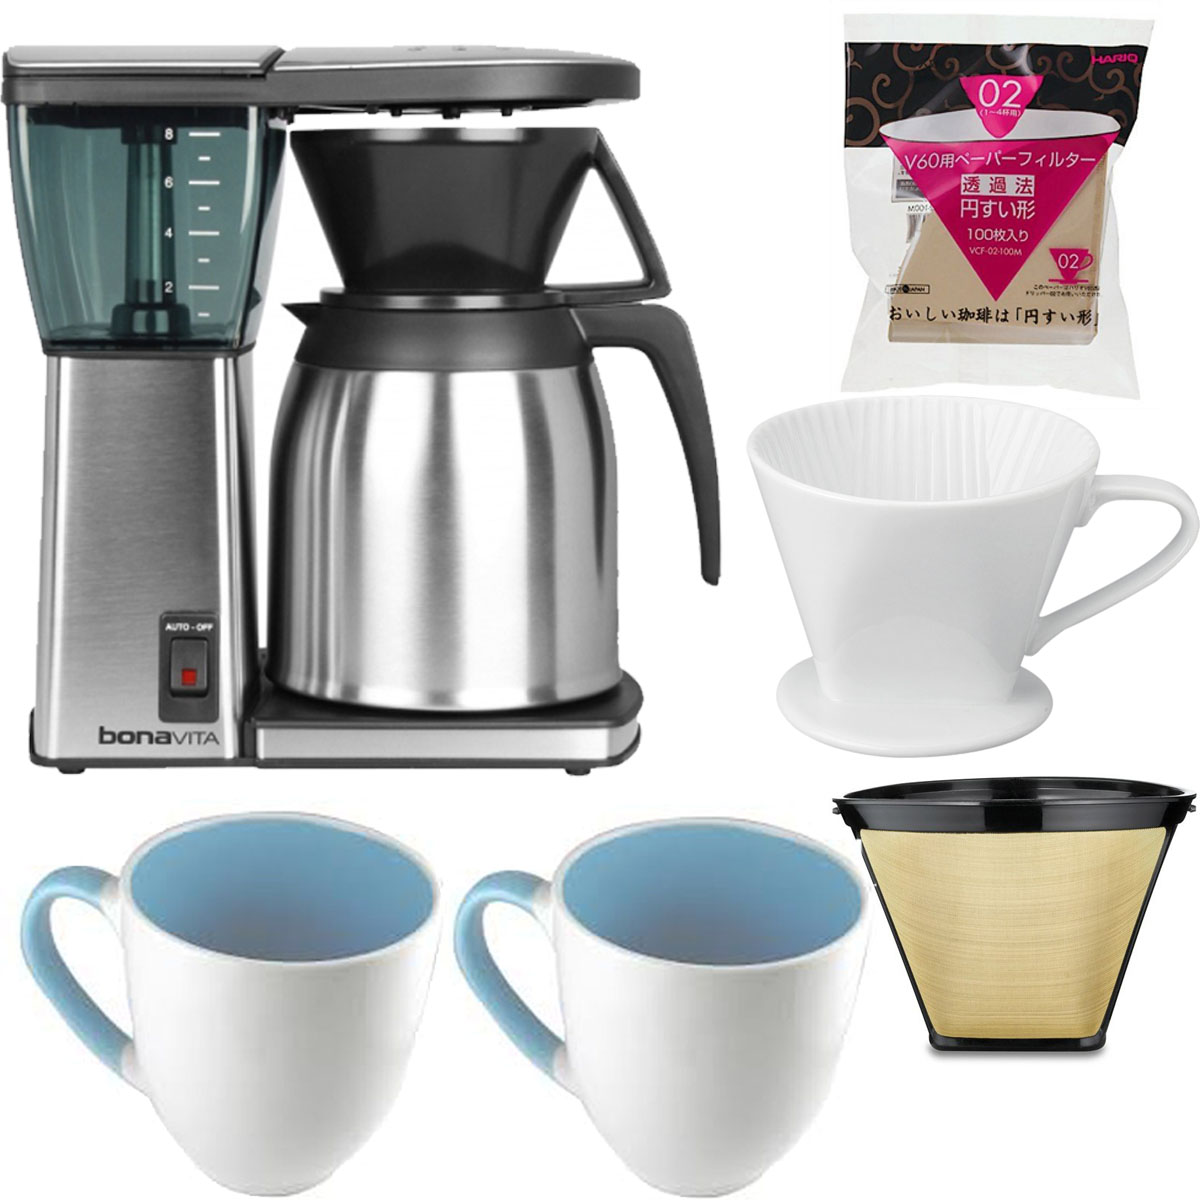 Bonavita 8 Cup Coffee Maker With Thermal Carafe Bundle